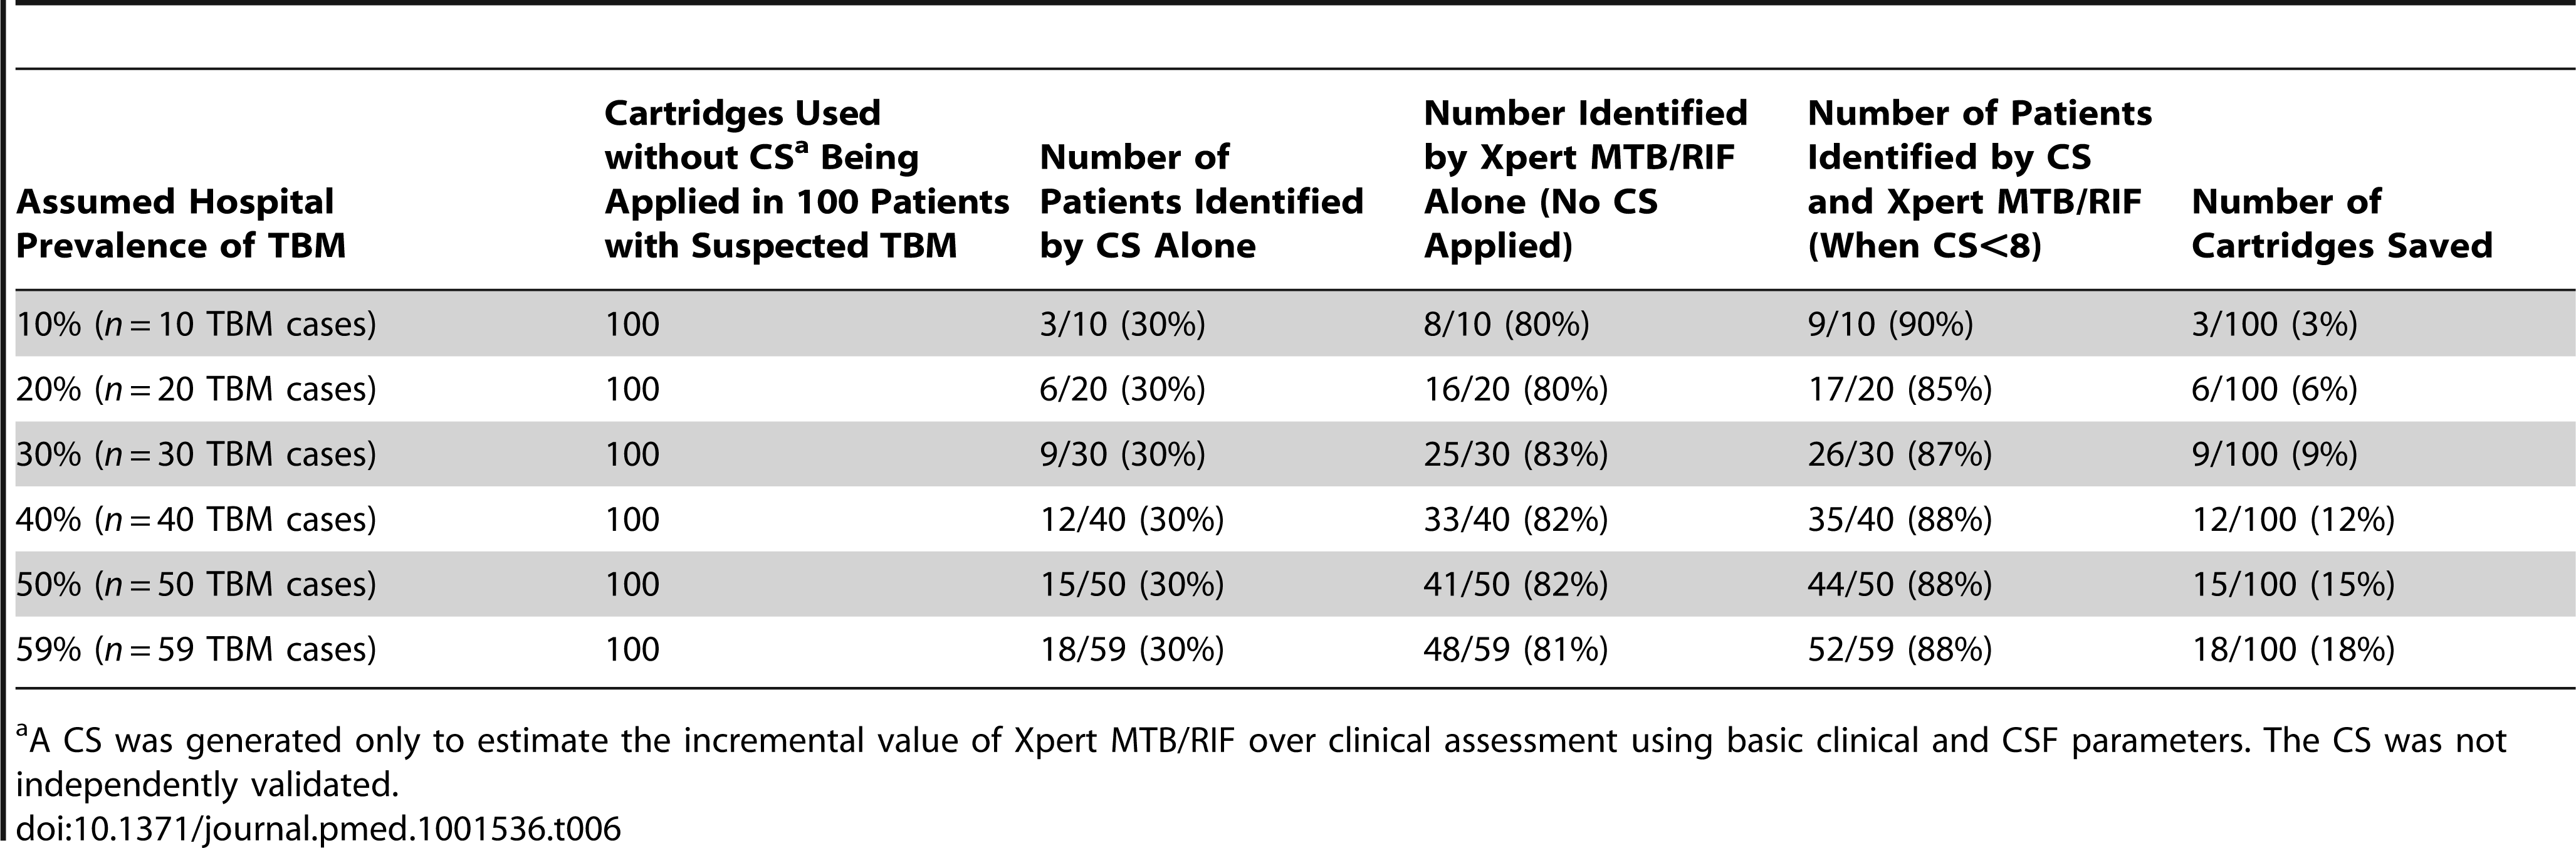 The number of cartridges potentially saved when using CS prior to centrifuged Xpert MTB/RIF testing in a hypothetical cohort of 100 patients with suspected TBM.